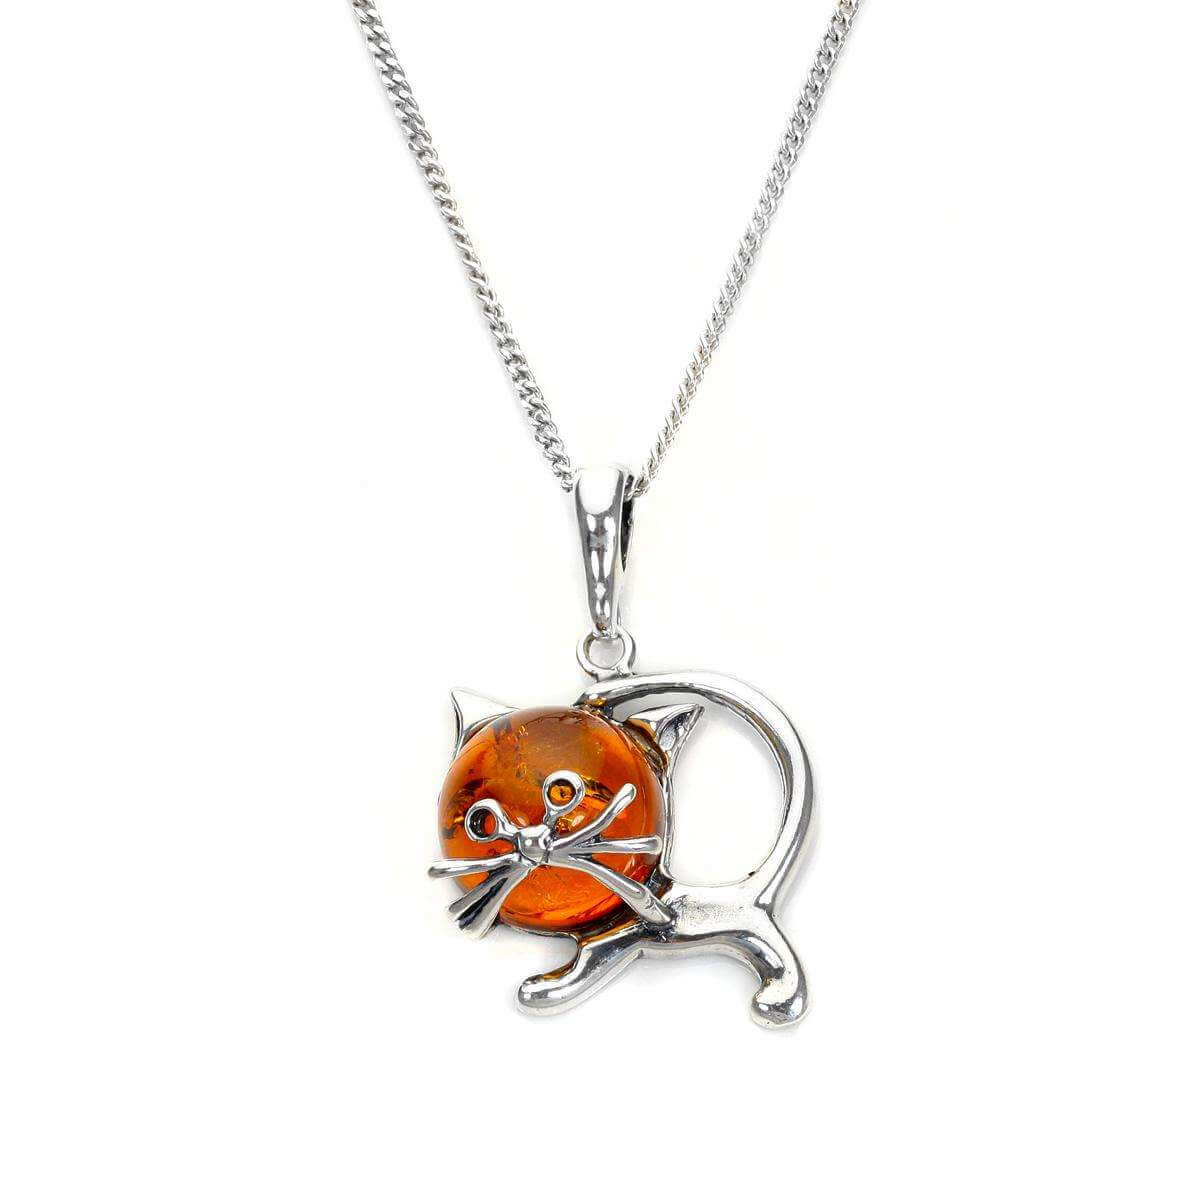 Sterling Silver & Baltic Amber Cat Pendant